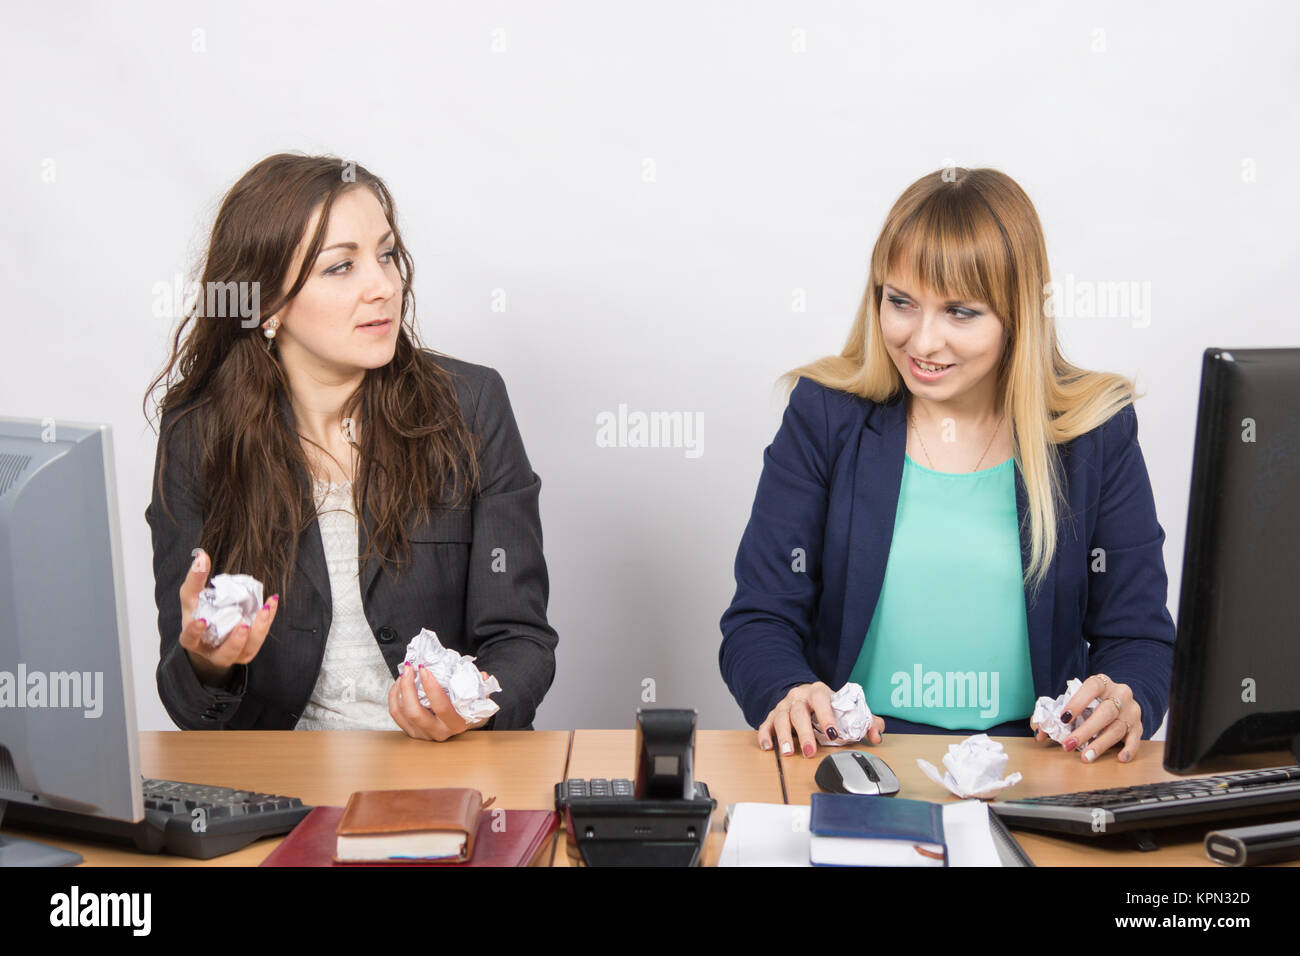 Angered, disgruntled employee office crumple the paper - Stock Image